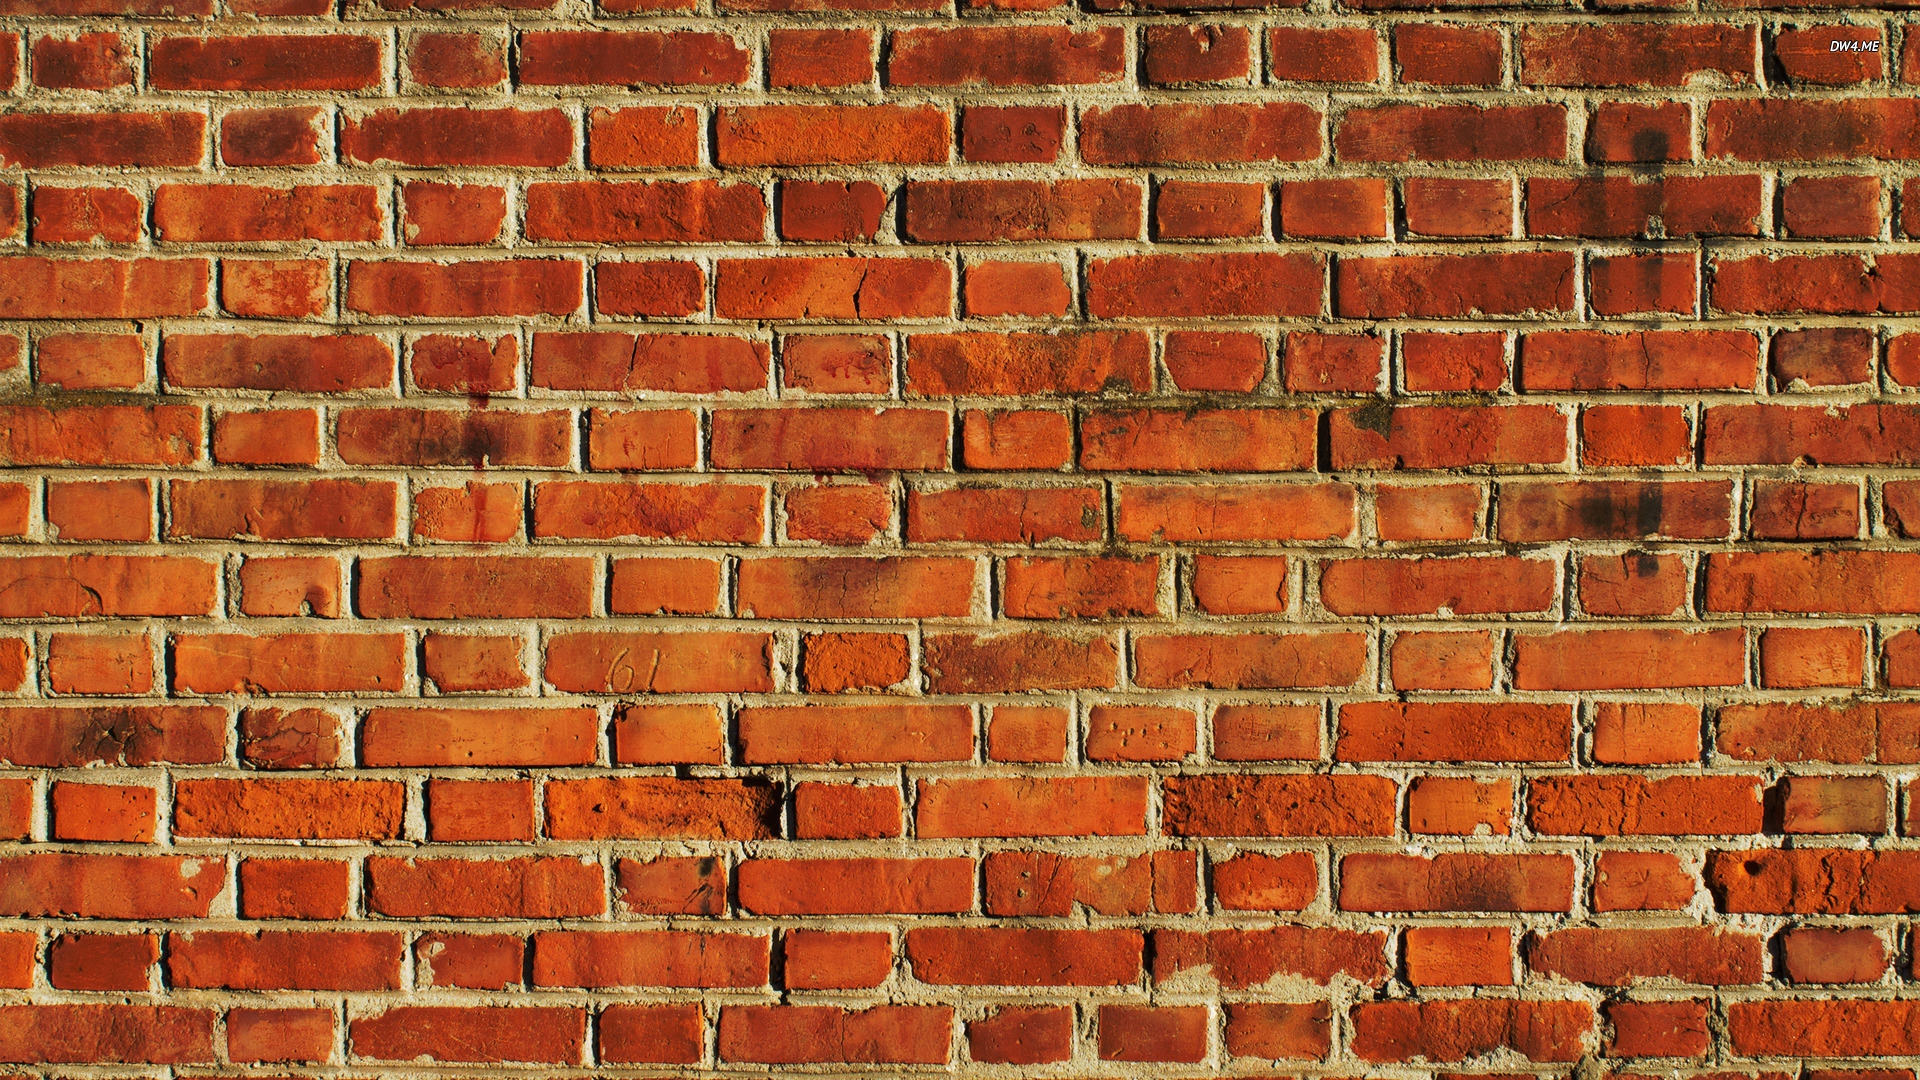 Top Brick Wall Design In Brick Wall Wallpaper  Part 81